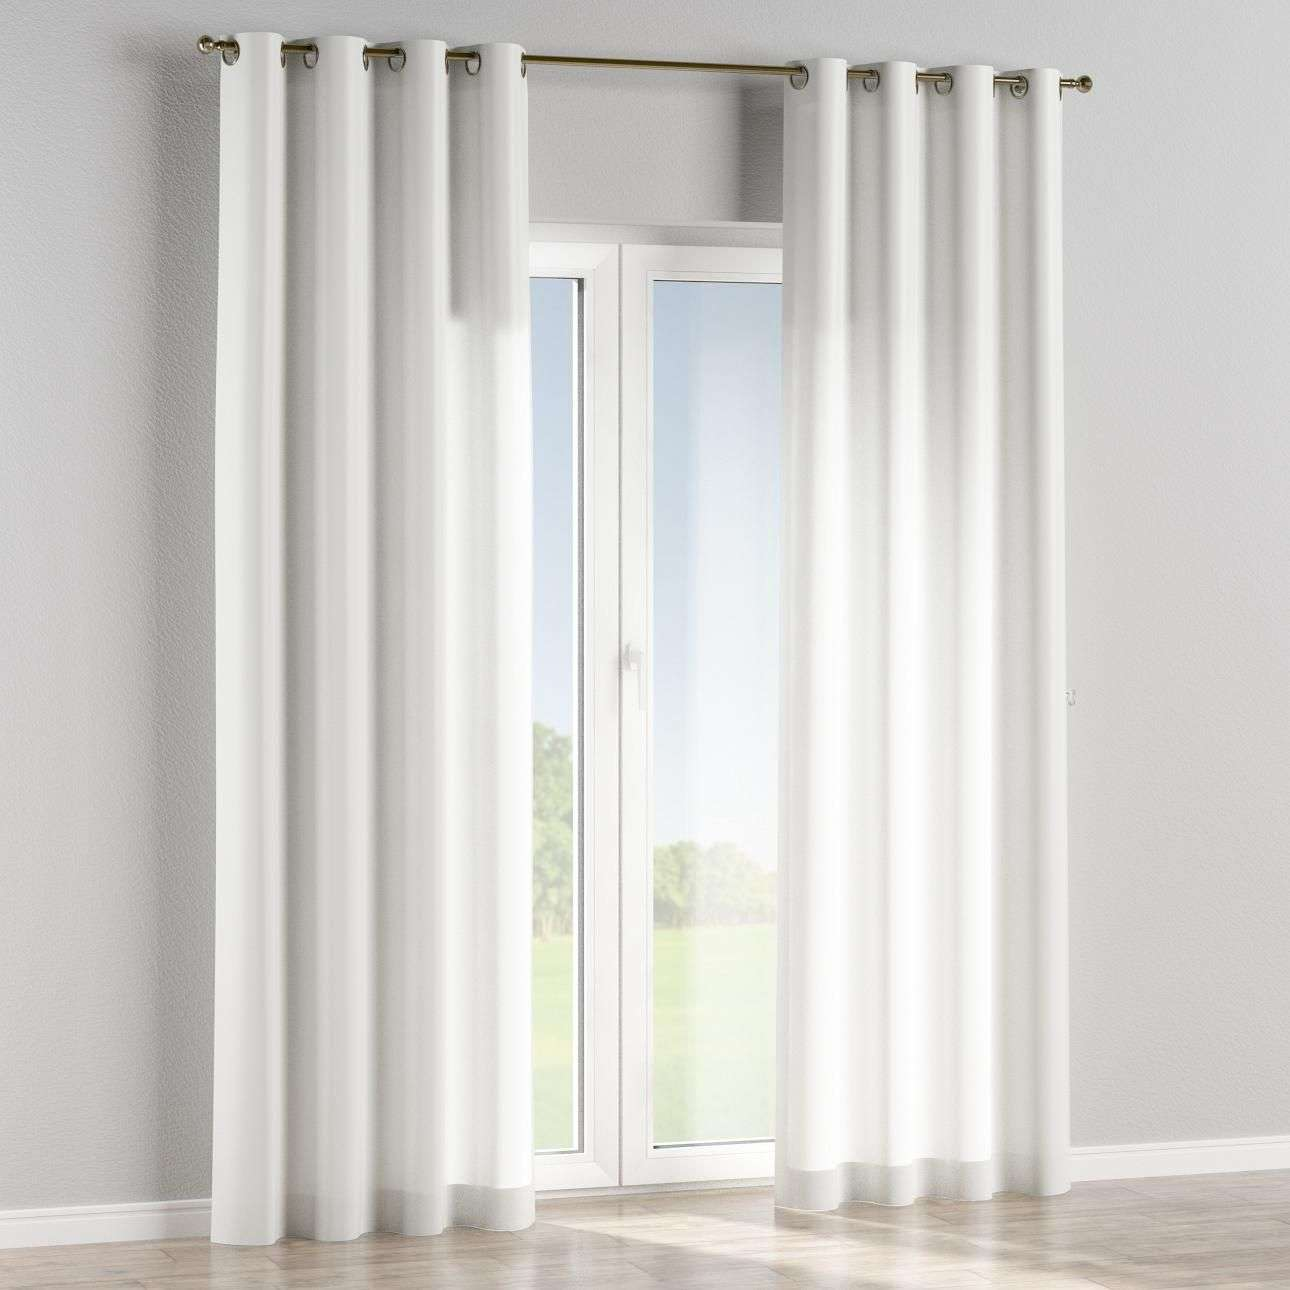 Eyelet curtains in collection Milano, fabric: 150-26